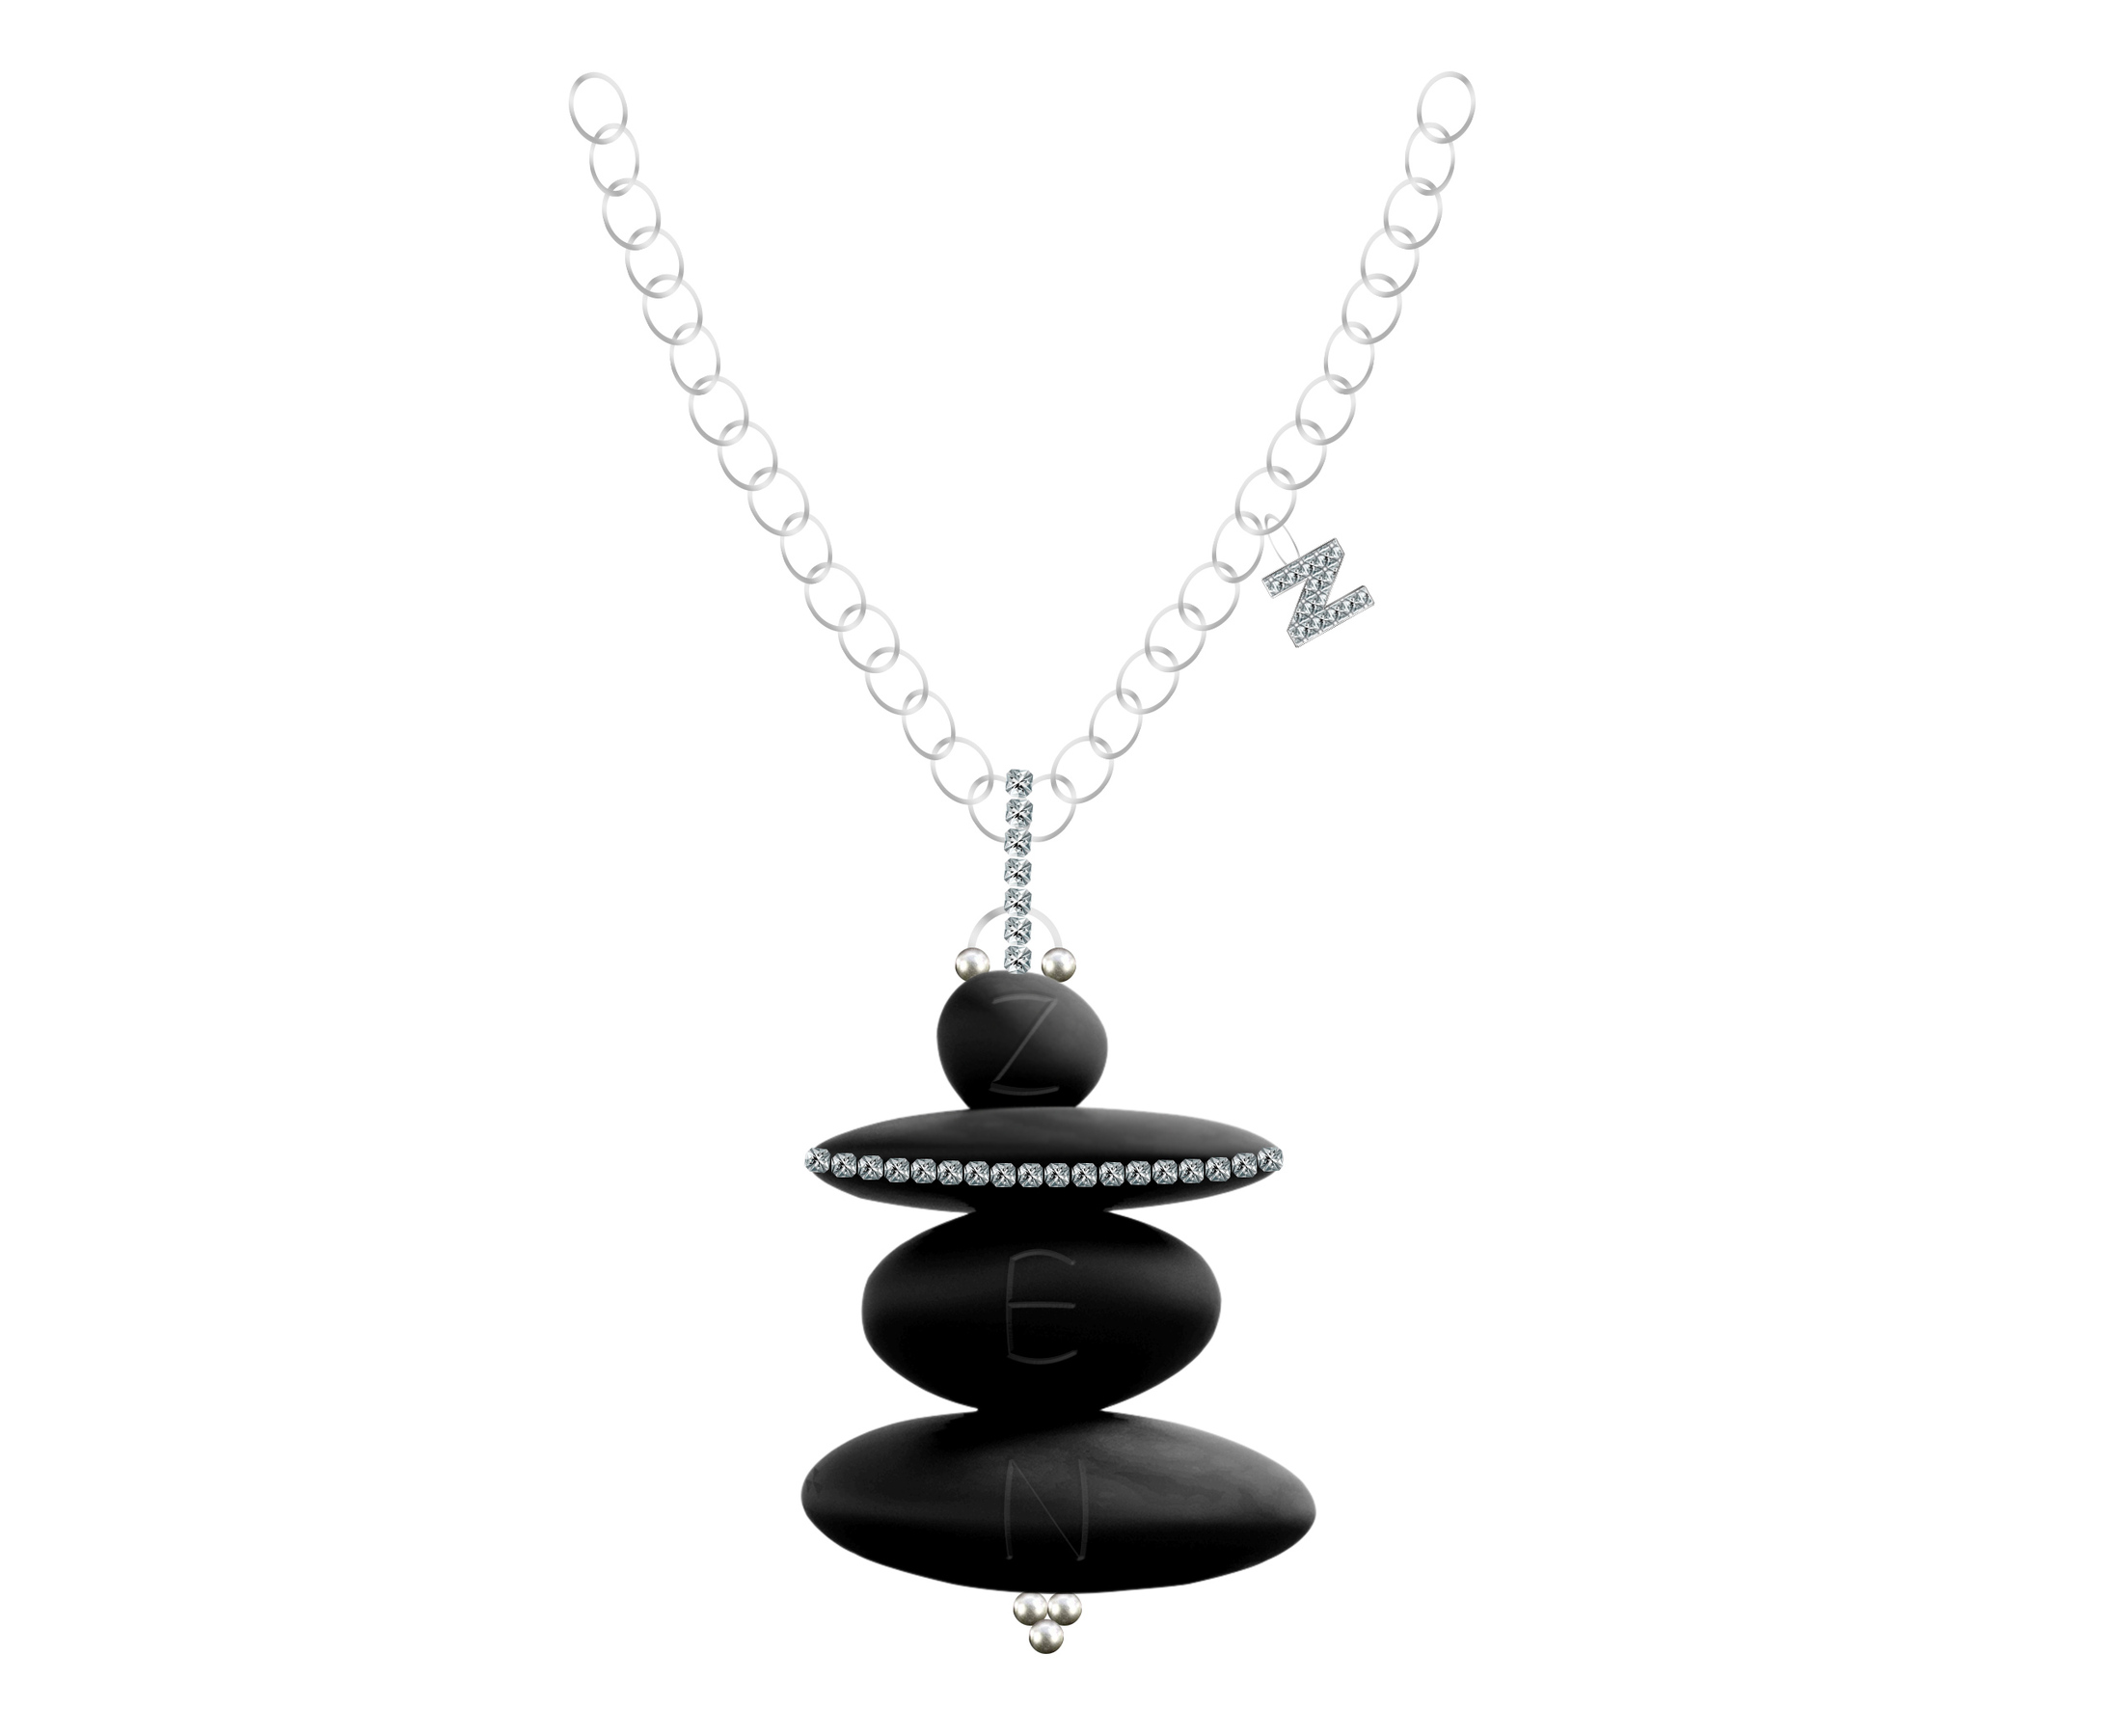 Zen Designer Necklace by Steven Zale